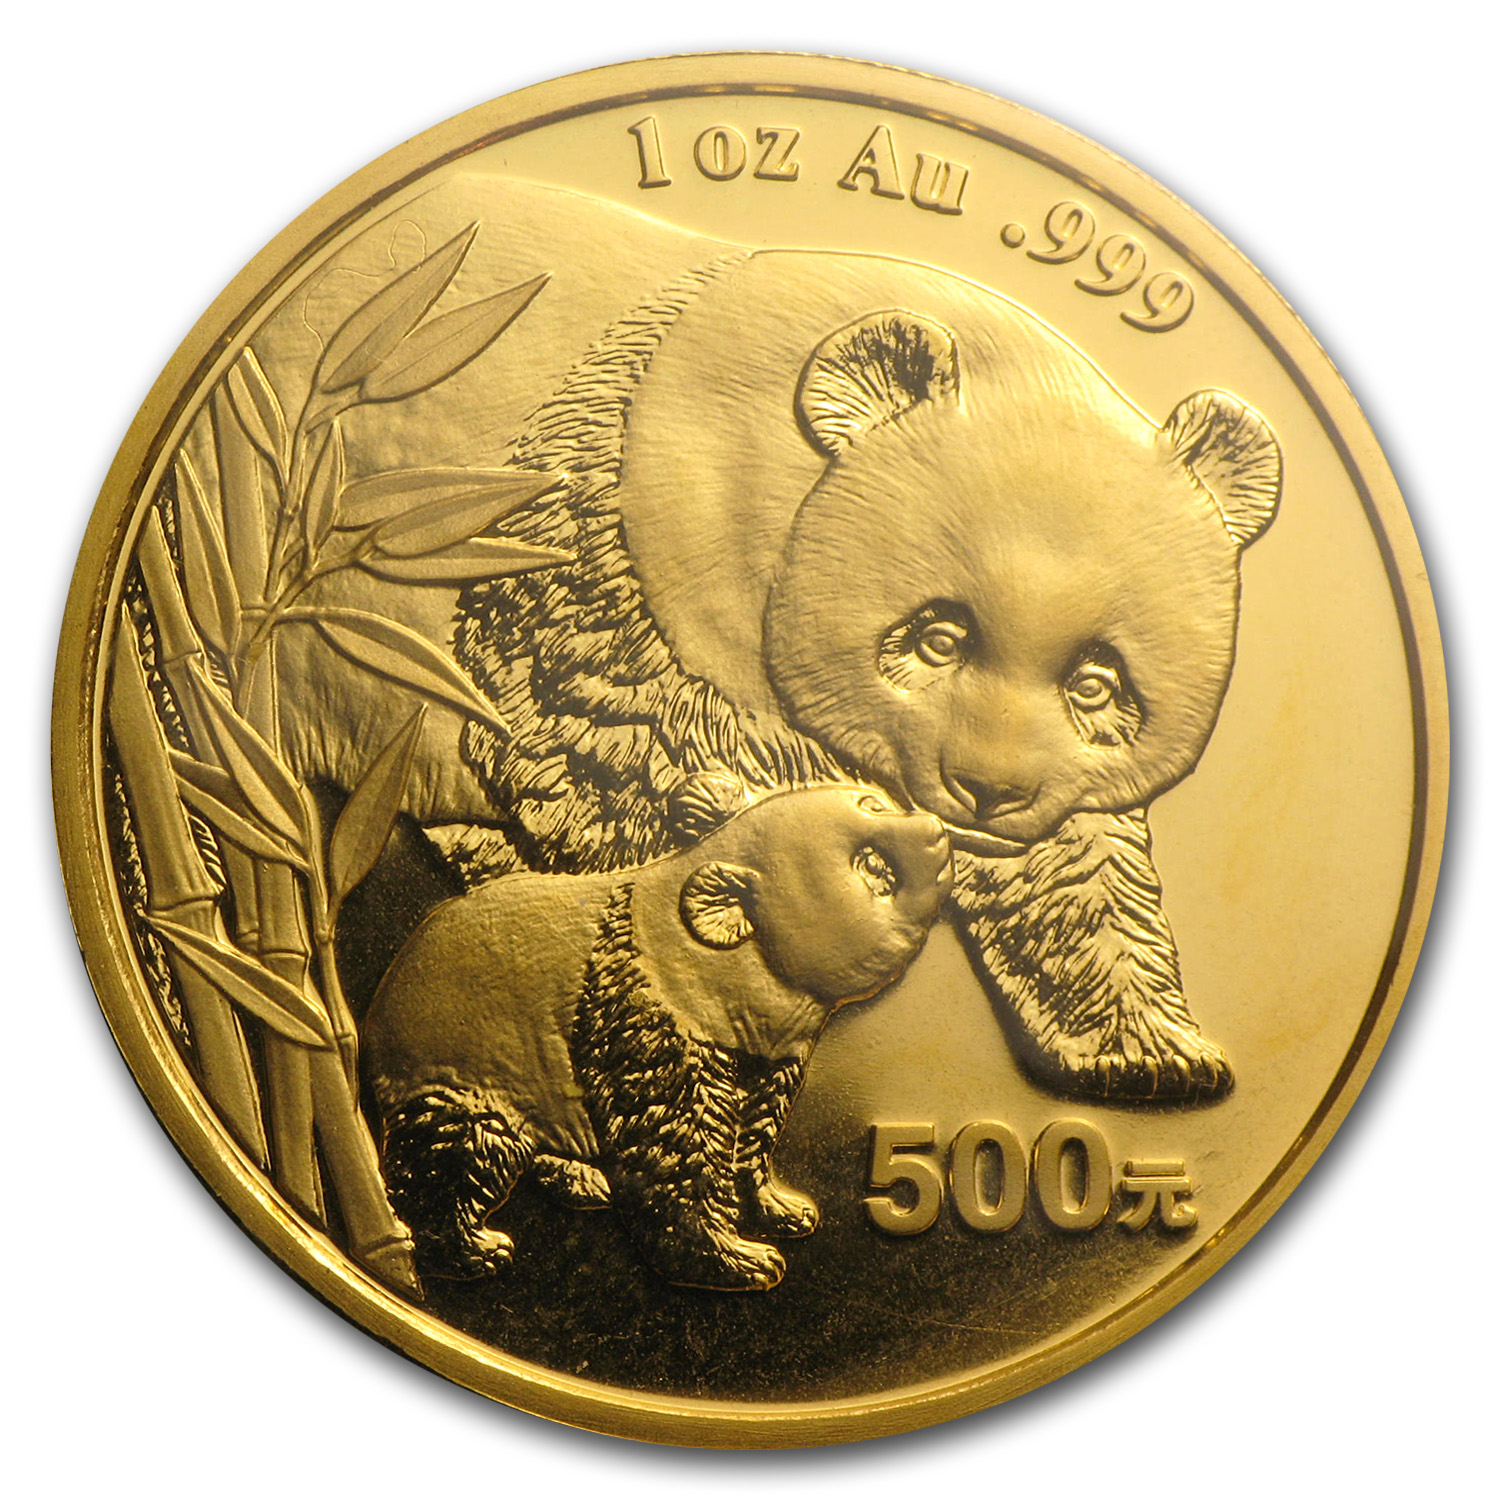 2004 China 1 oz Gold Panda BU (Sealed)